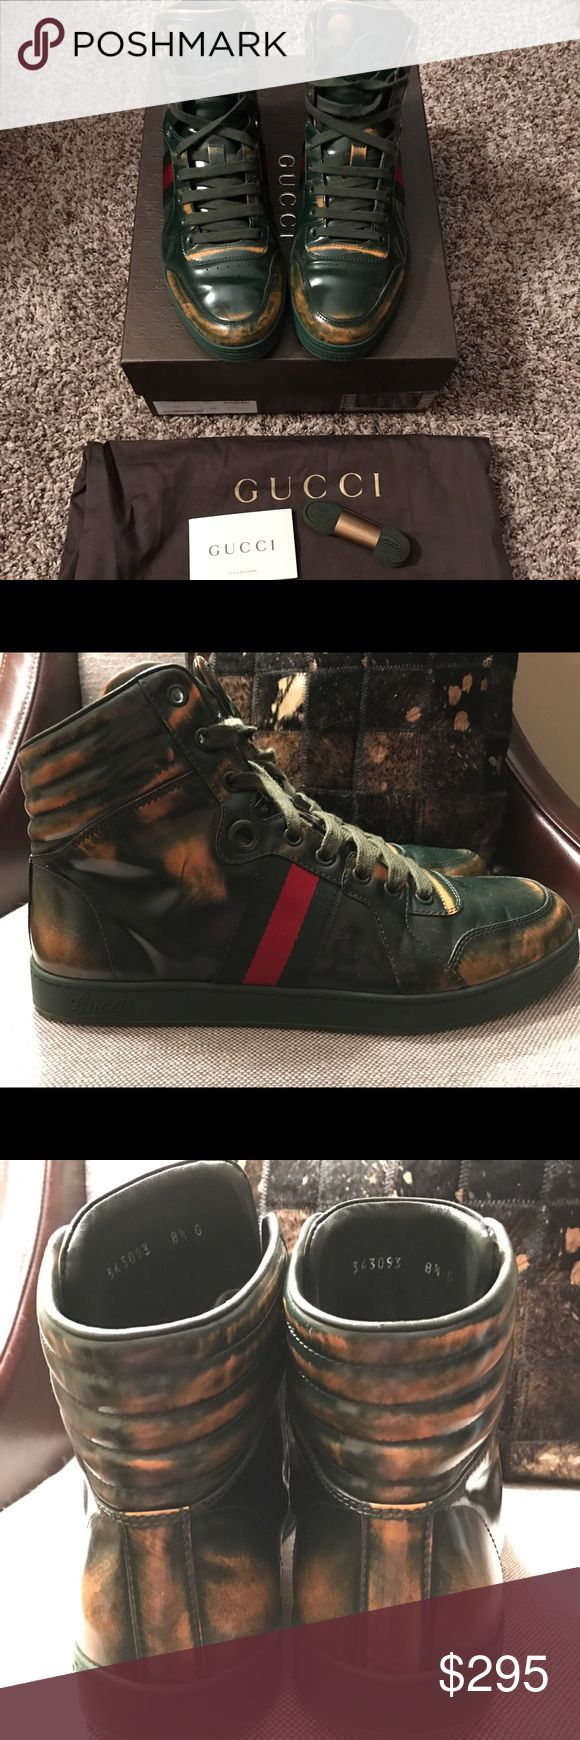 Gucci Men's Limited Edition Ace High Top Sneakers Gucci limited edition burnished leather Ace high top sneakers in green. These shoes are gently worn and in excellent condition. They come with the box, dustbag, and extra laces. Original retail $795. The size is Gucci 8.5 which is a 9 to 9.5 US. I wear a 9.5 and they fit me perfectly. They have some scuffs and minor wear on both the soles and upper. Gucci Shoes Sneakers